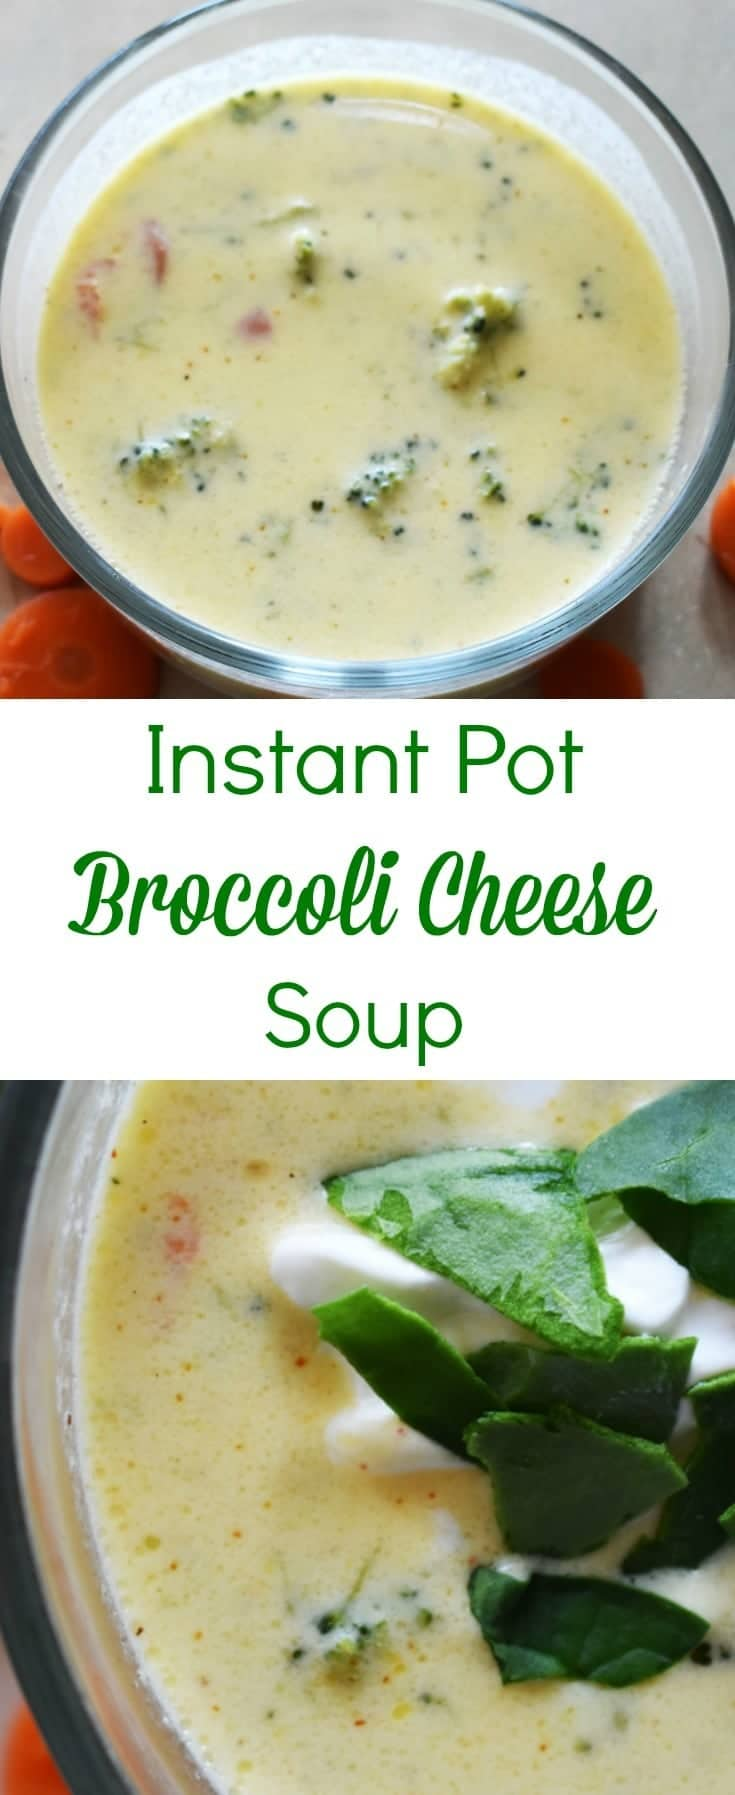 My favorite soup made even better now that I can make it in my Instant Pot! This Instant Pot broccoli cheese soup is a yummy, but super easy meal. #instantpot #pressurecooker